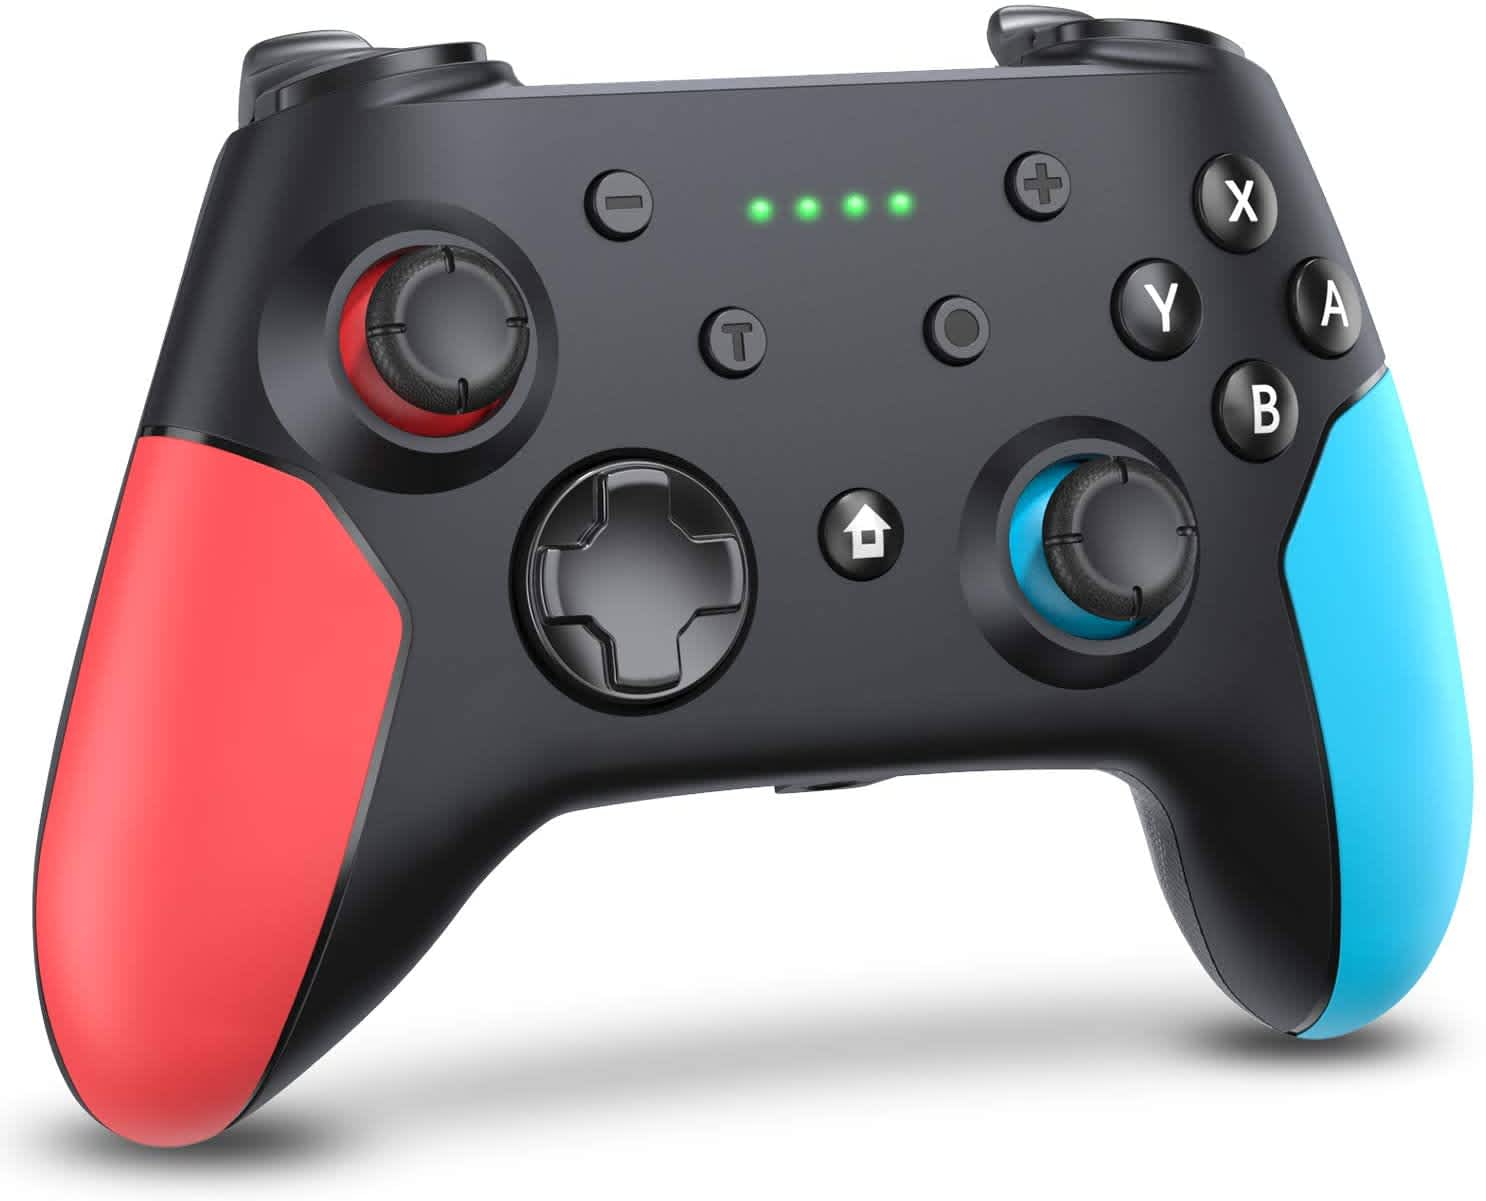 Ljbld Wireless Controller for Nintendo Switch